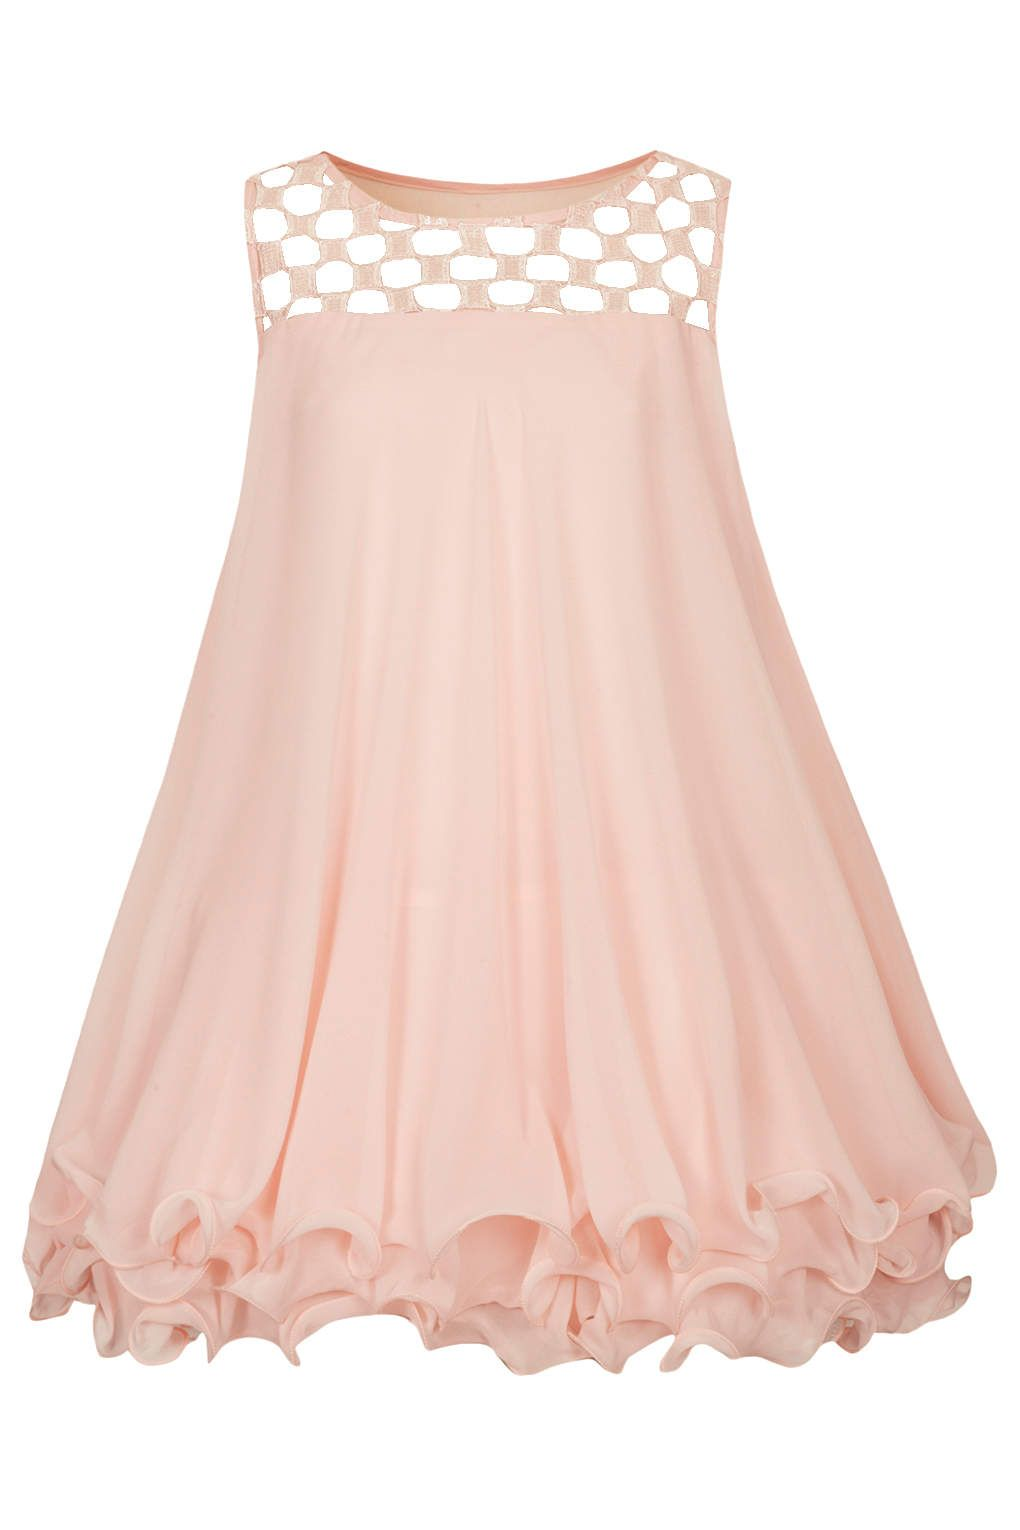 Limtied Edition Swing Dress by Rare - Dresses - Clothing - Topshop ...